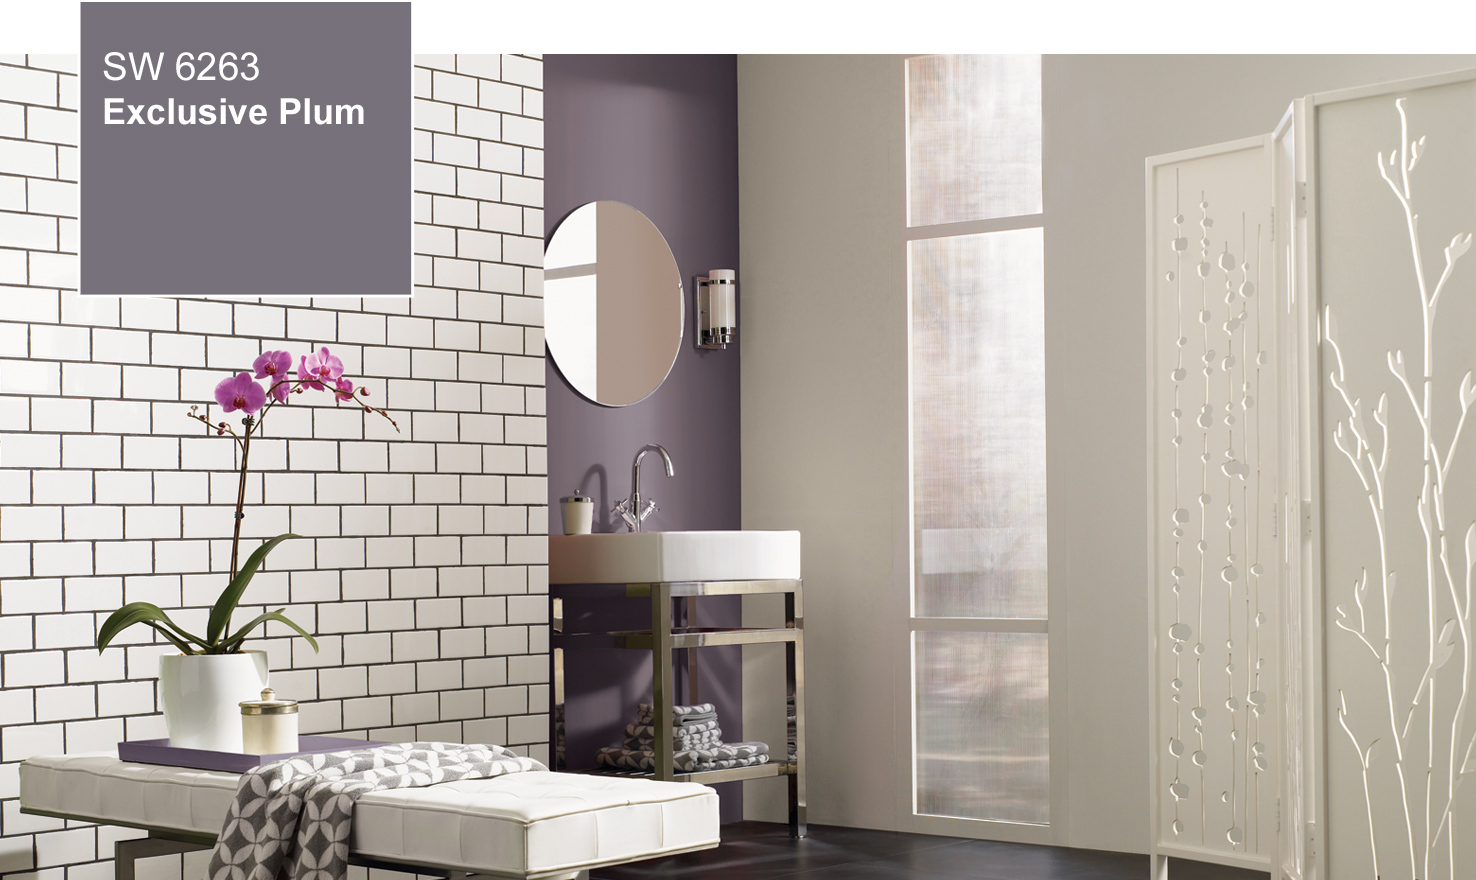 Sherwin Williams 2014 Color Of The Year Exclusive Plum Alpharetta Milton Roswell Cheryl